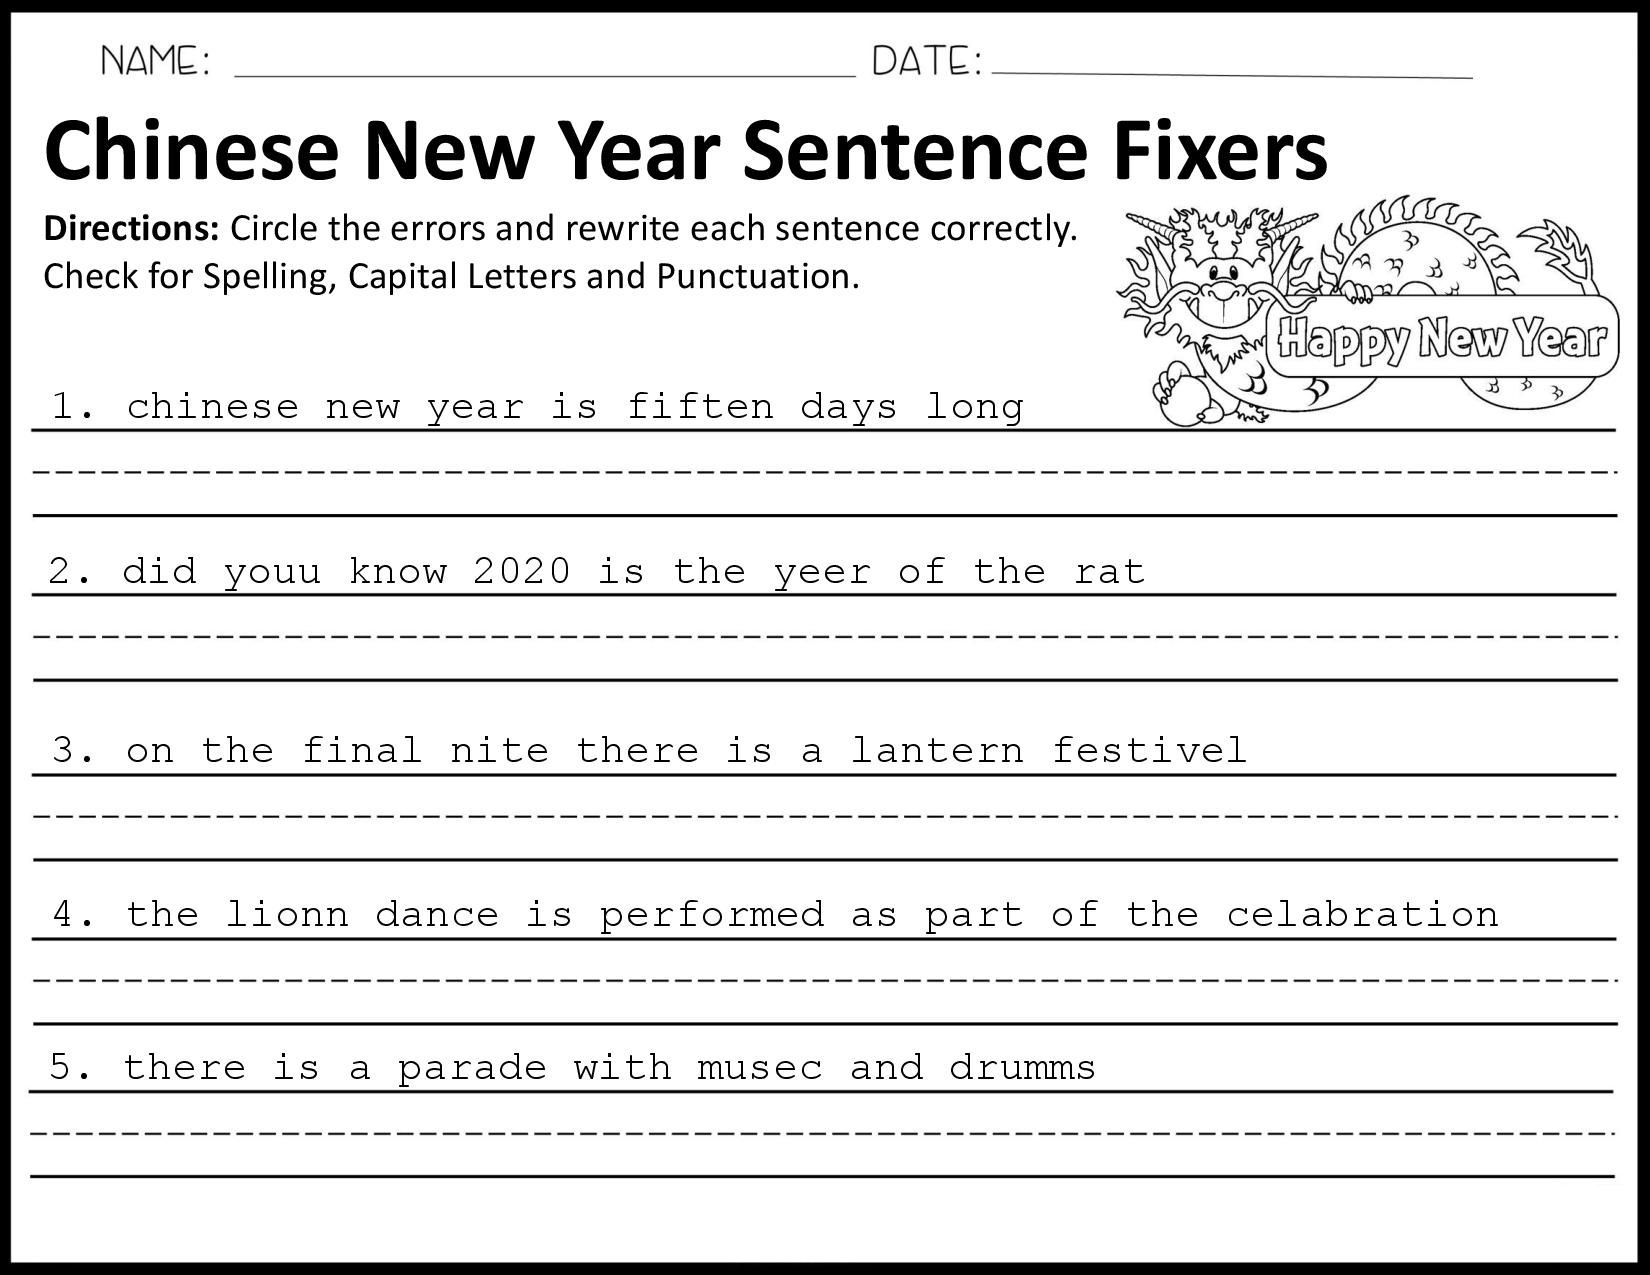 Chinese New Year Sentence Fixers